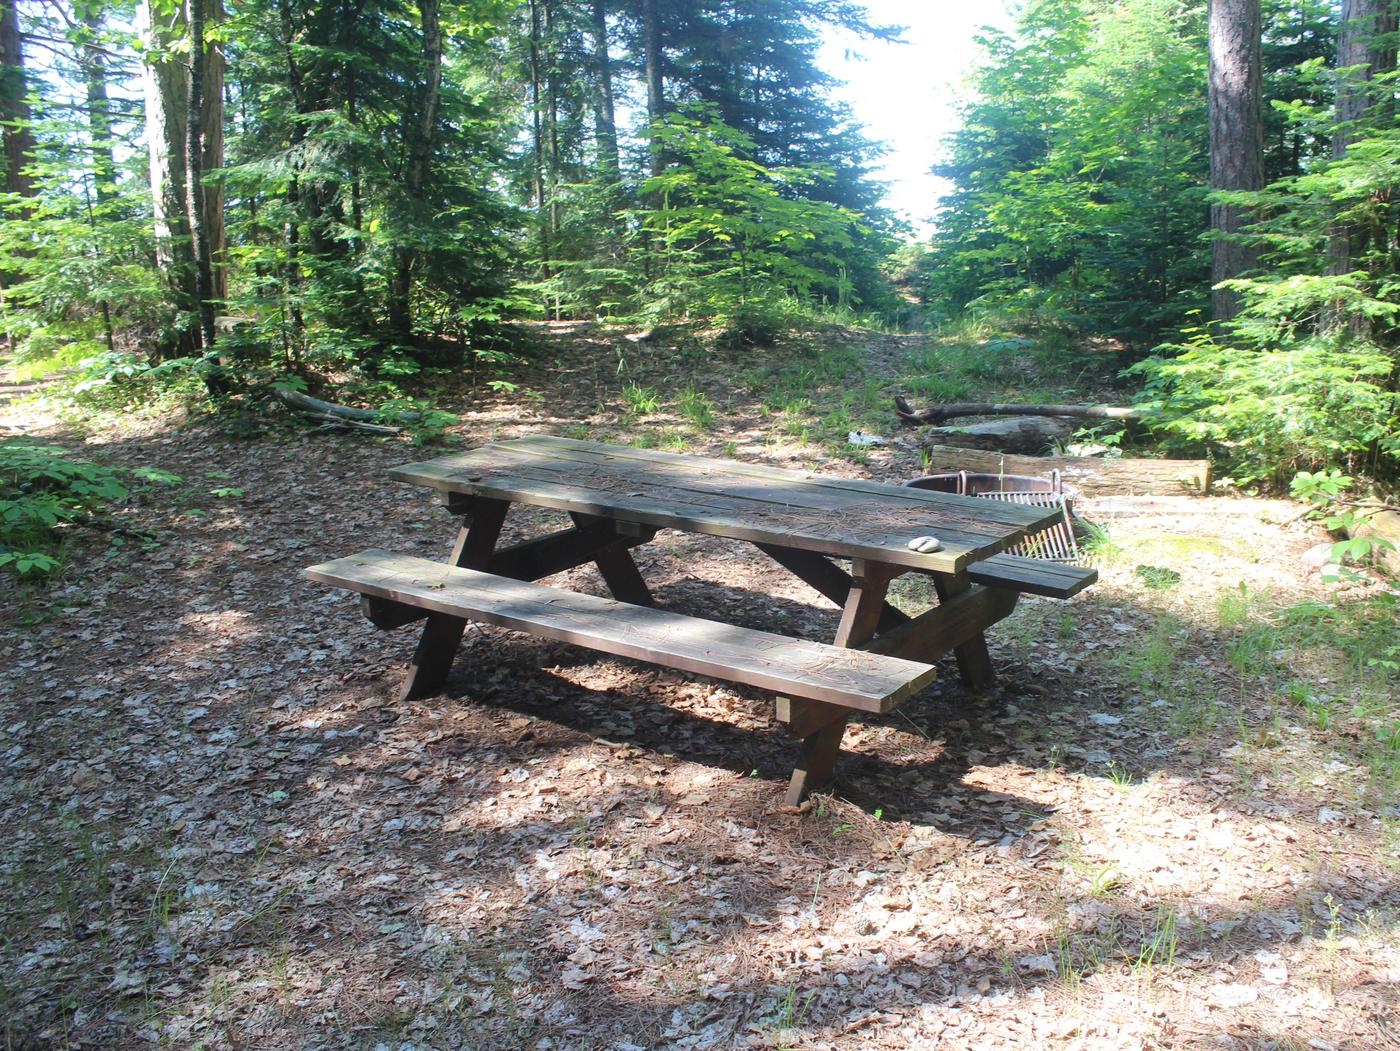 Michigan site 1 with picnic table and fire ringMichigan site 1